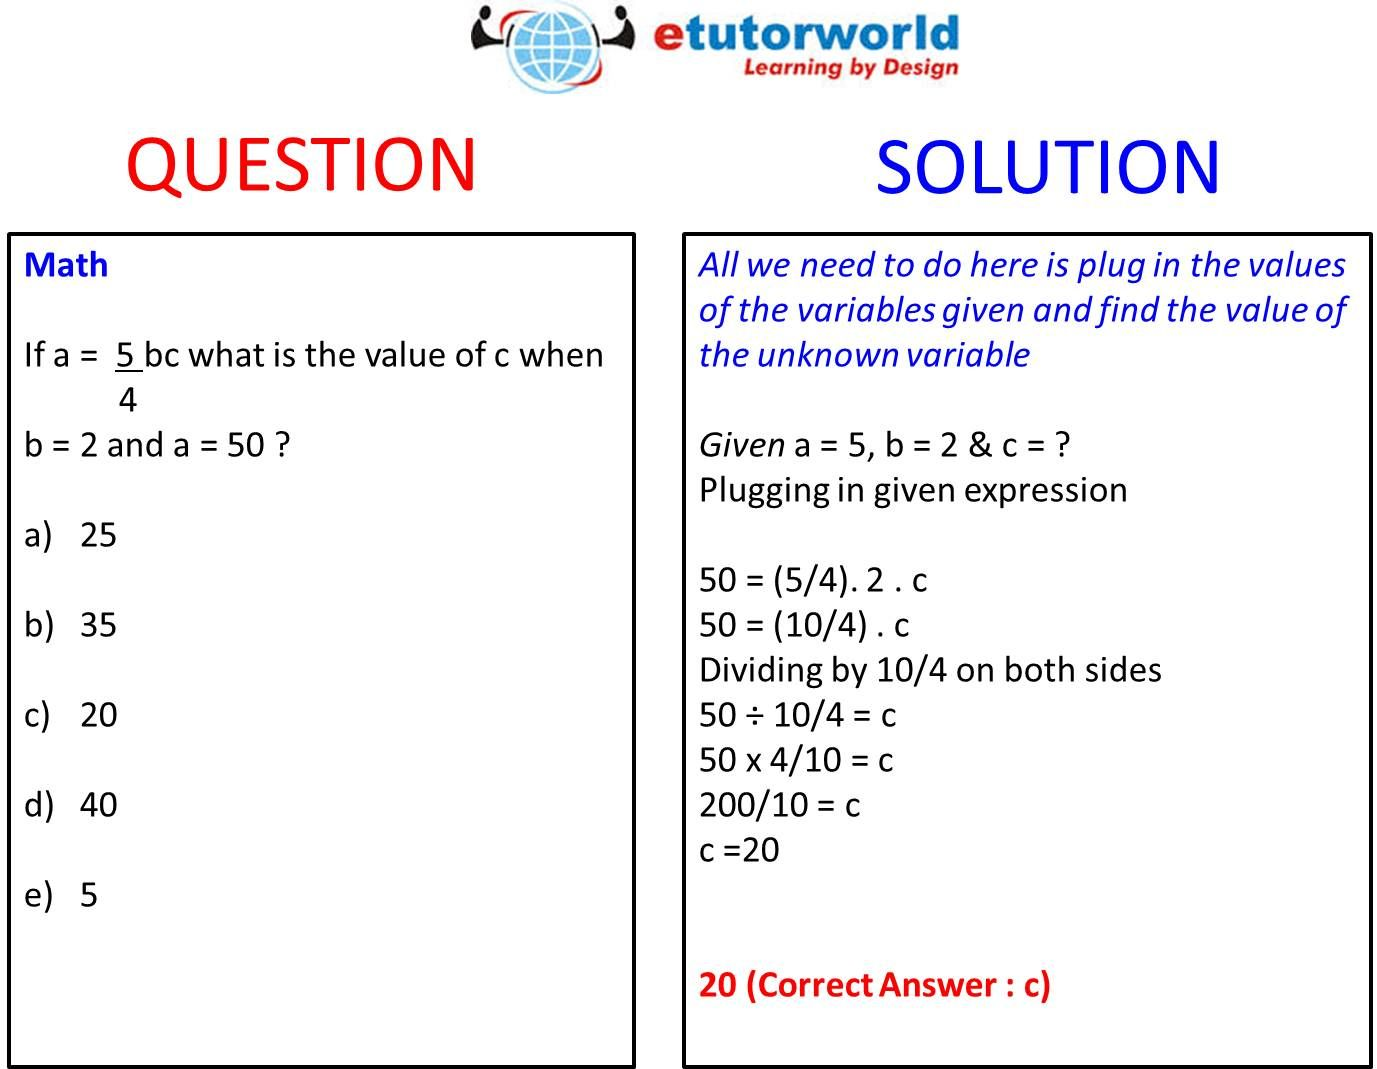 Questionoftheday Shows How We Can Find The Value Of An Unknown Variable In A Multi Variable Equation Learn Practice Math Tutor Math This Or That Questions [ 1069 x 1377 Pixel ]